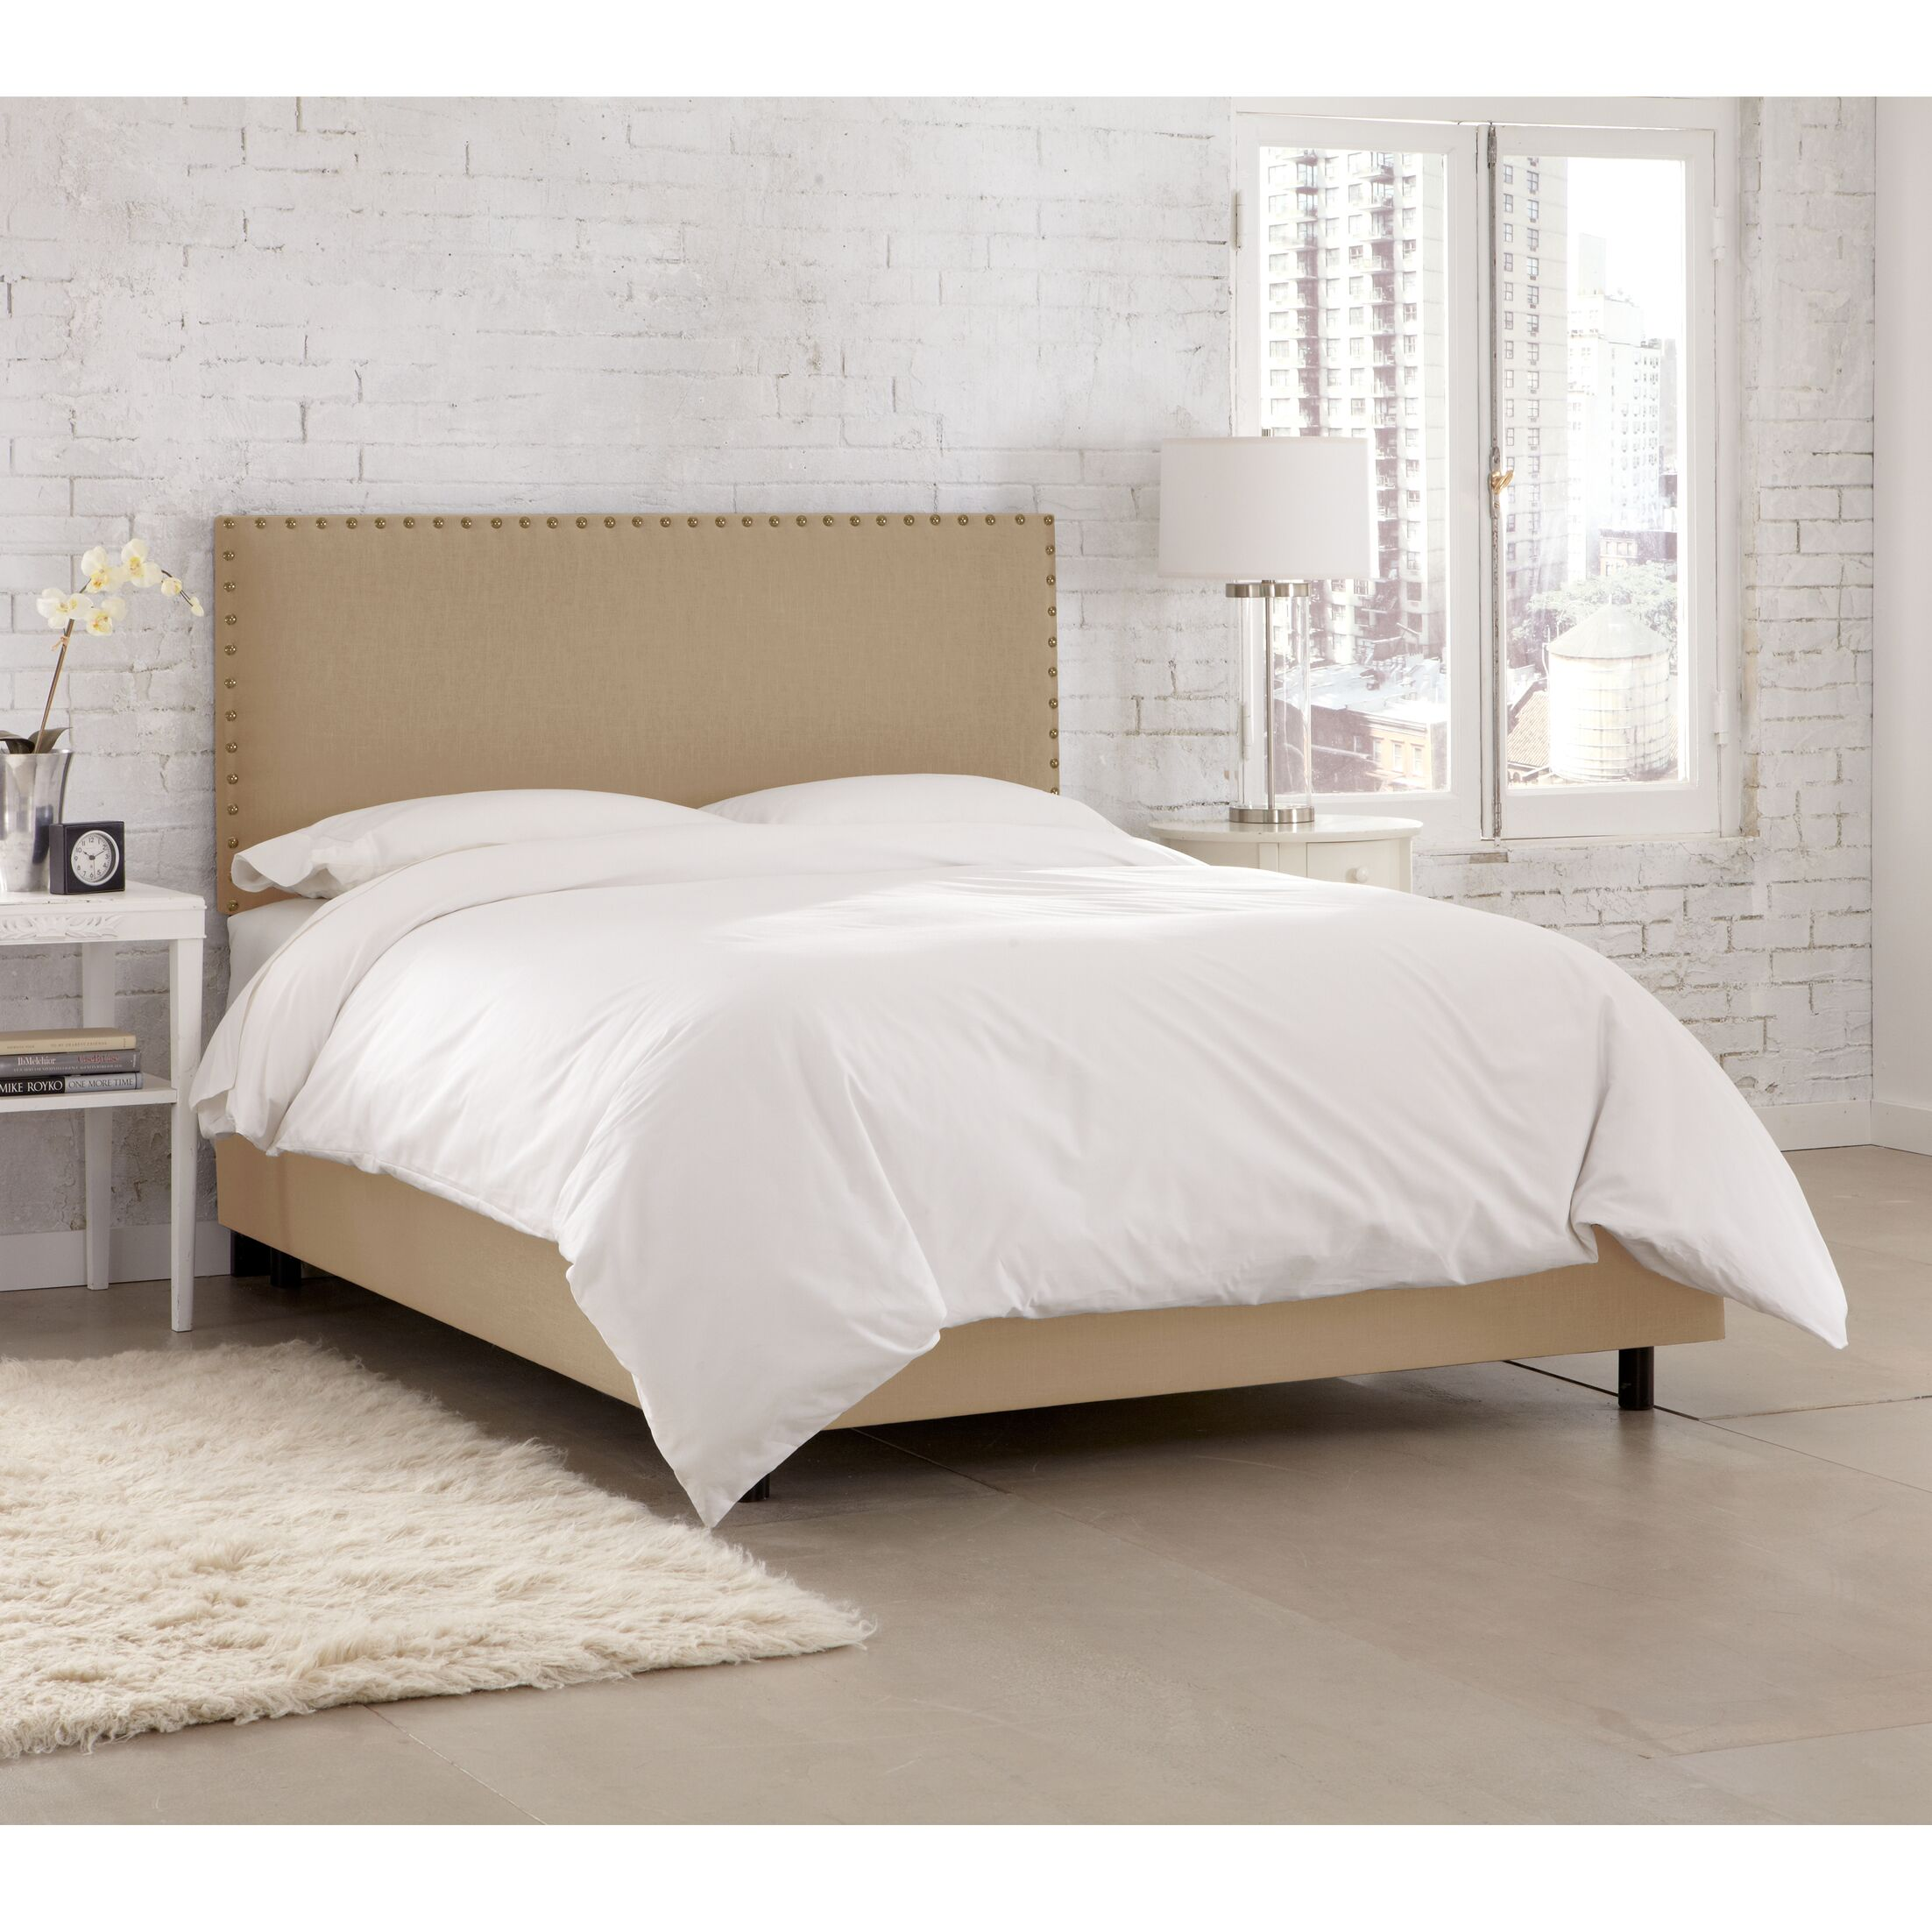 Kovach Upholstered Panel Bed with Mattress Size: Full, Color: Linen - Sandstone